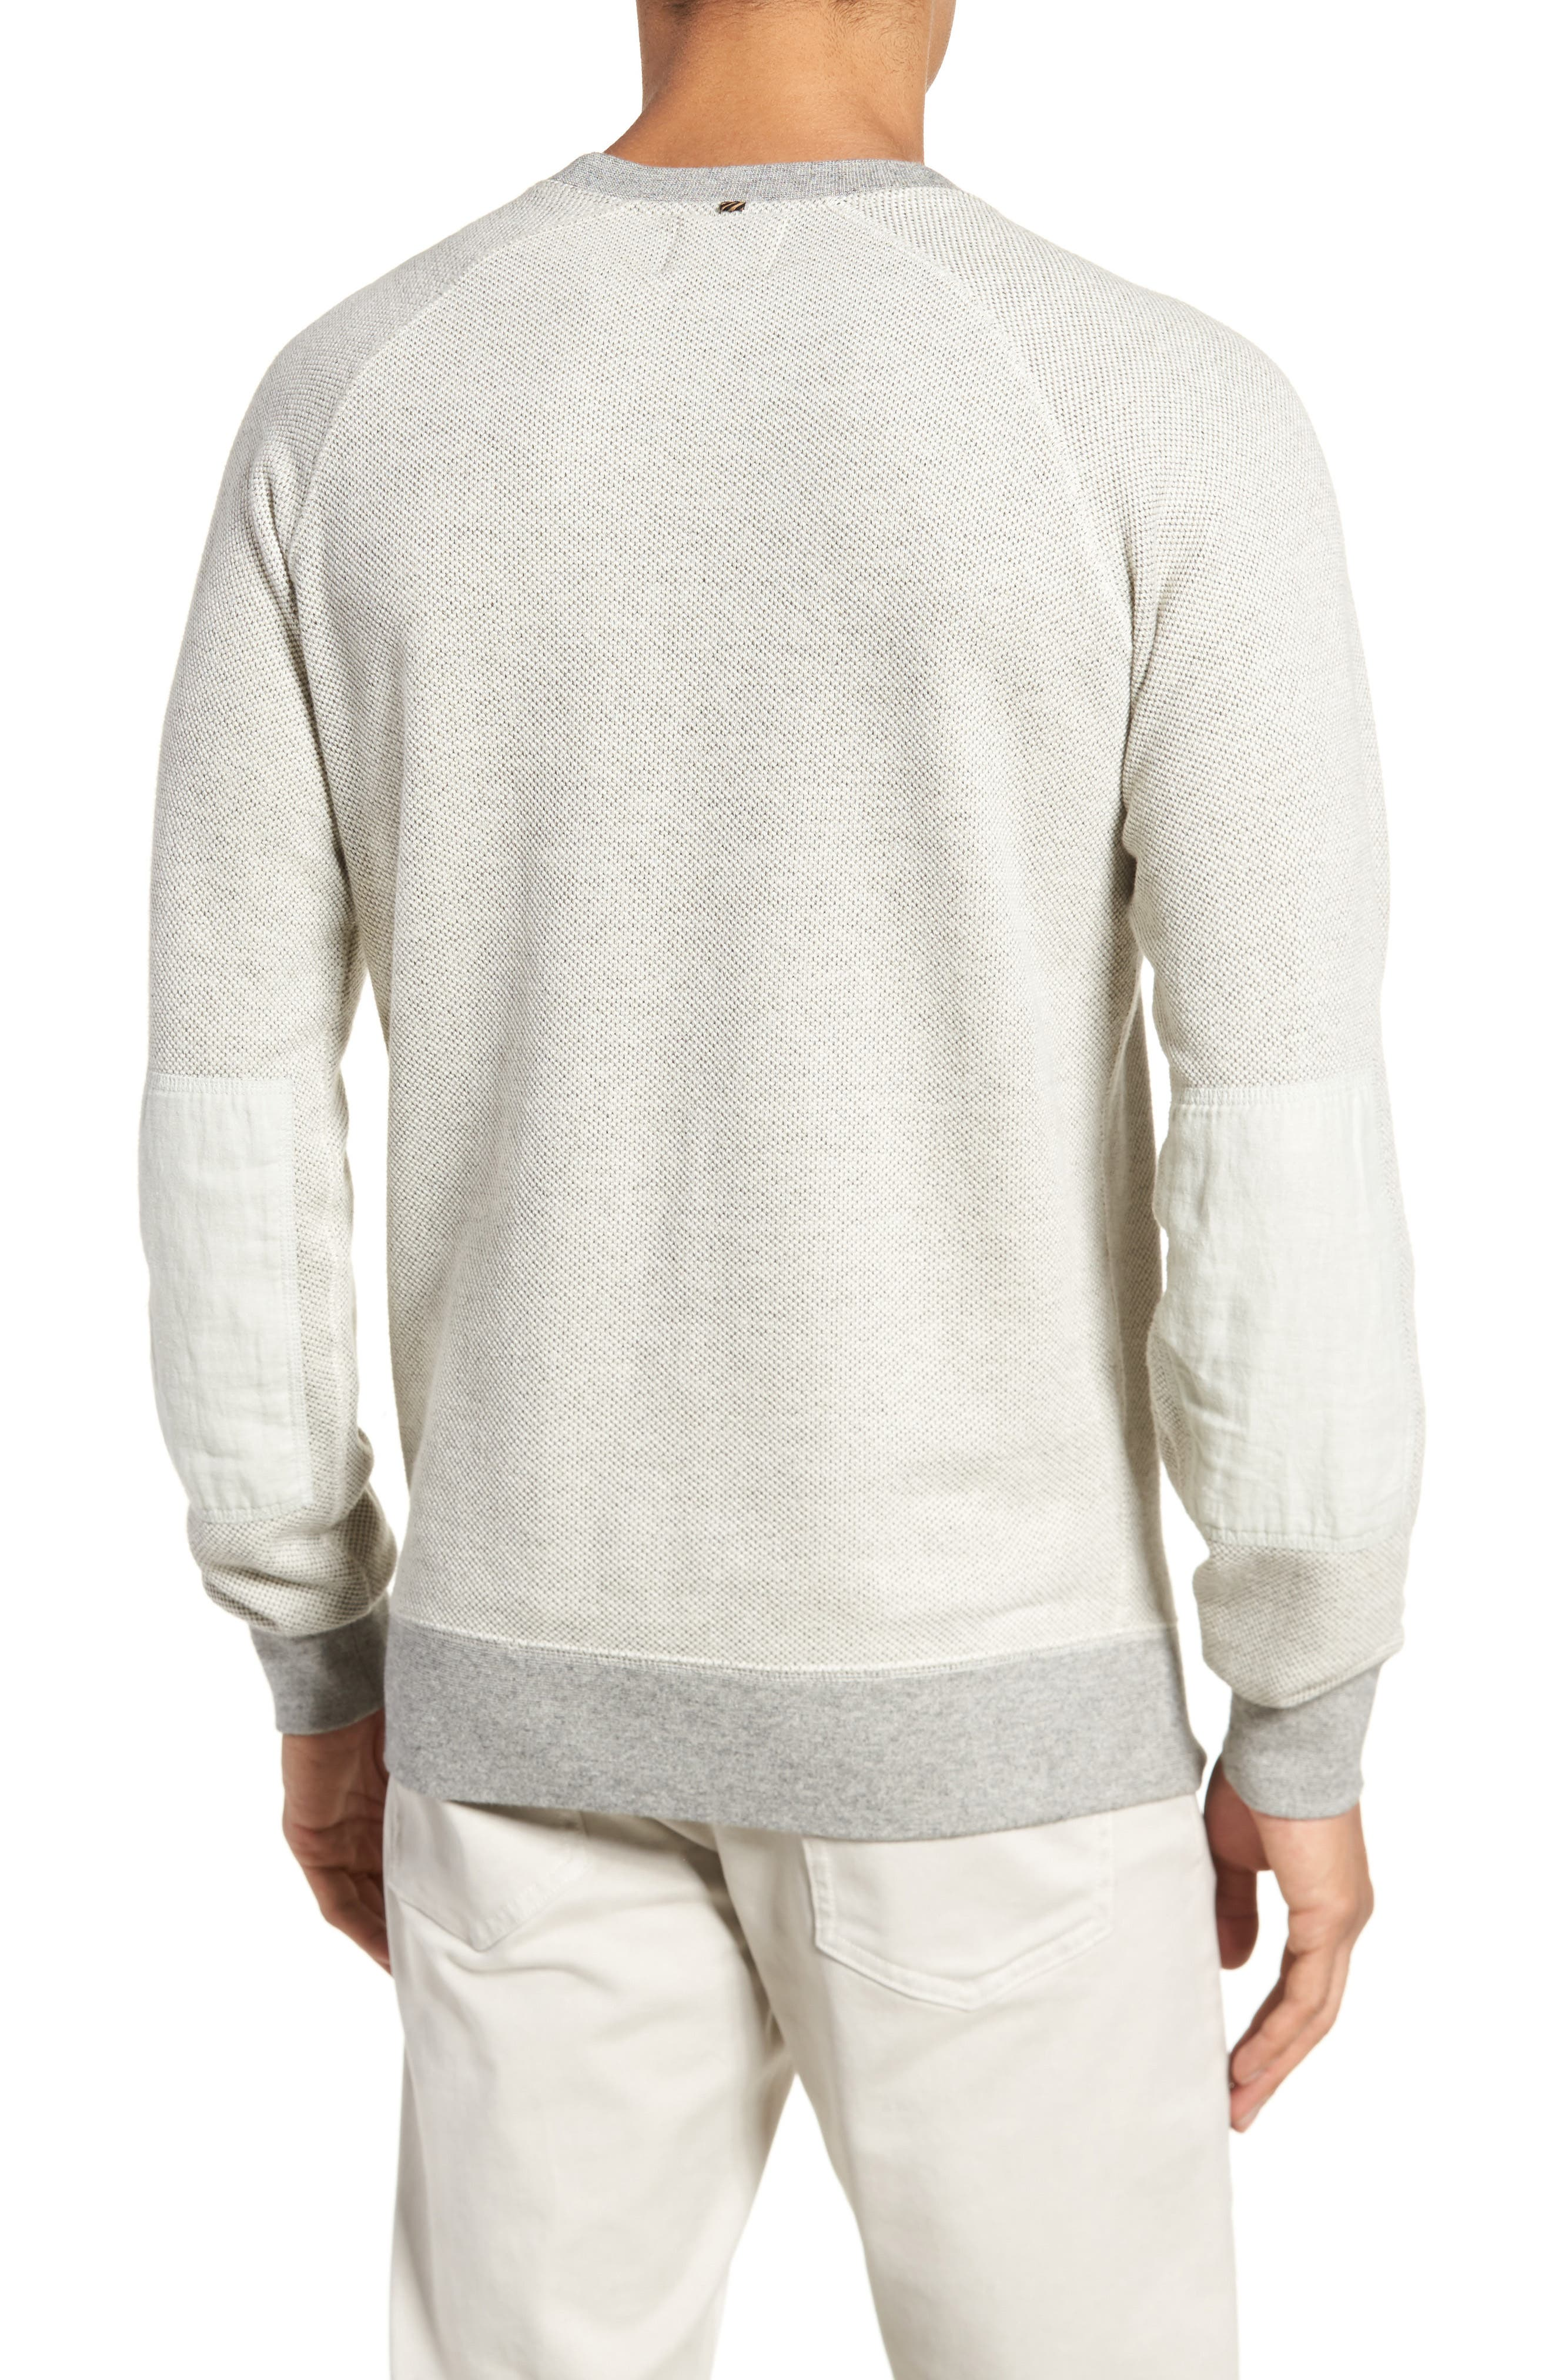 Tommy Pullover Sweatshirt,                             Alternate thumbnail 2, color,                             032